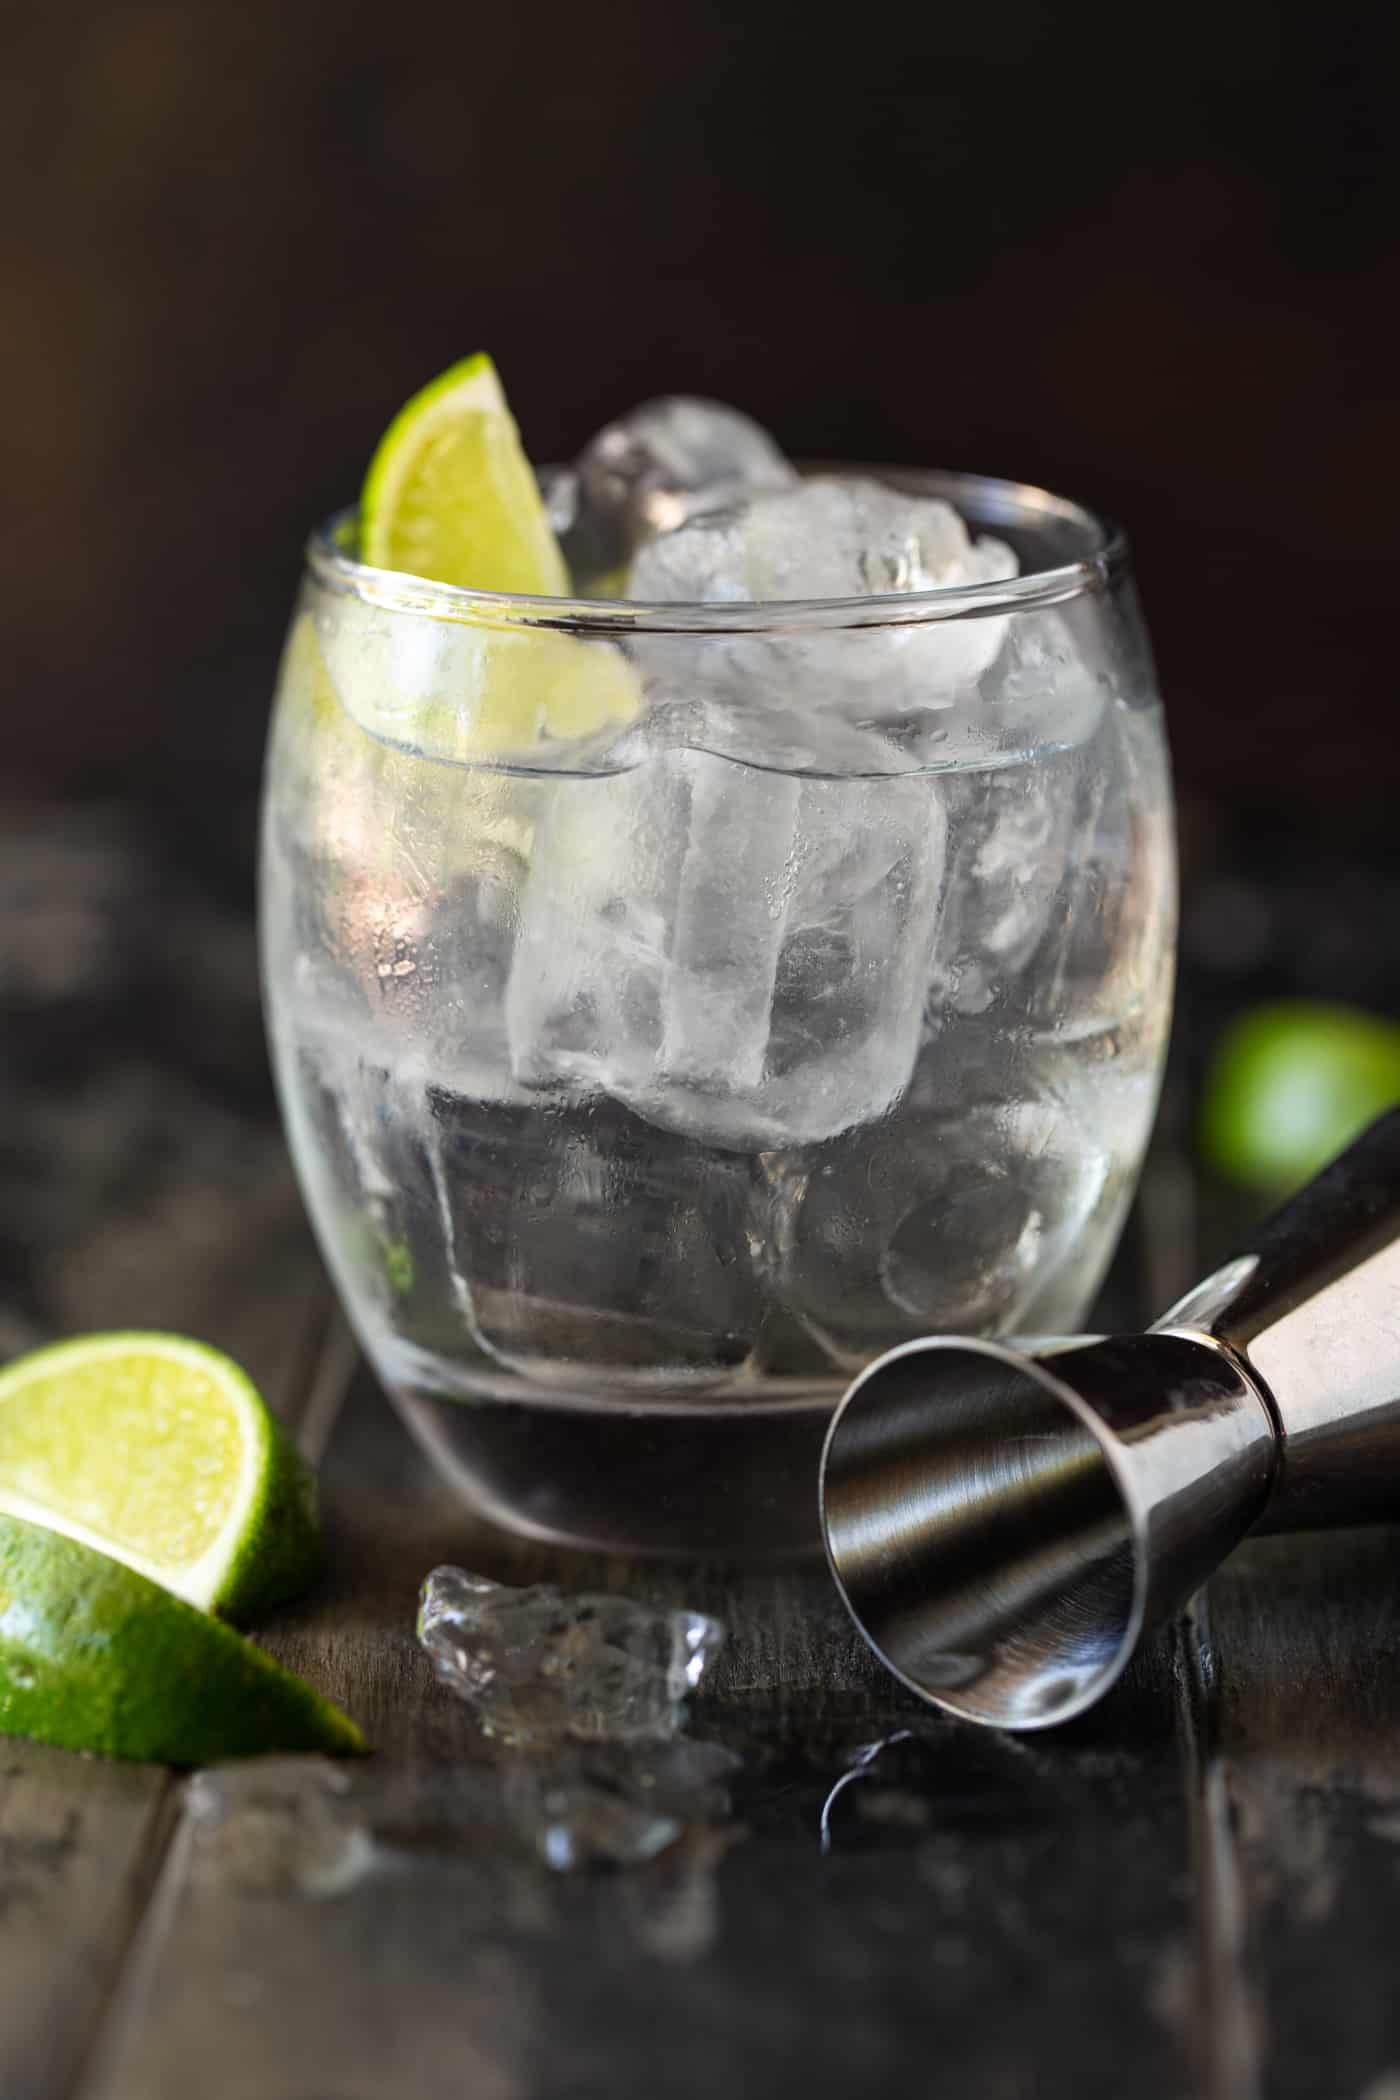 Lowball glass filled with ice, gin, tonic water, elderflower liqueur and a lime wedge.